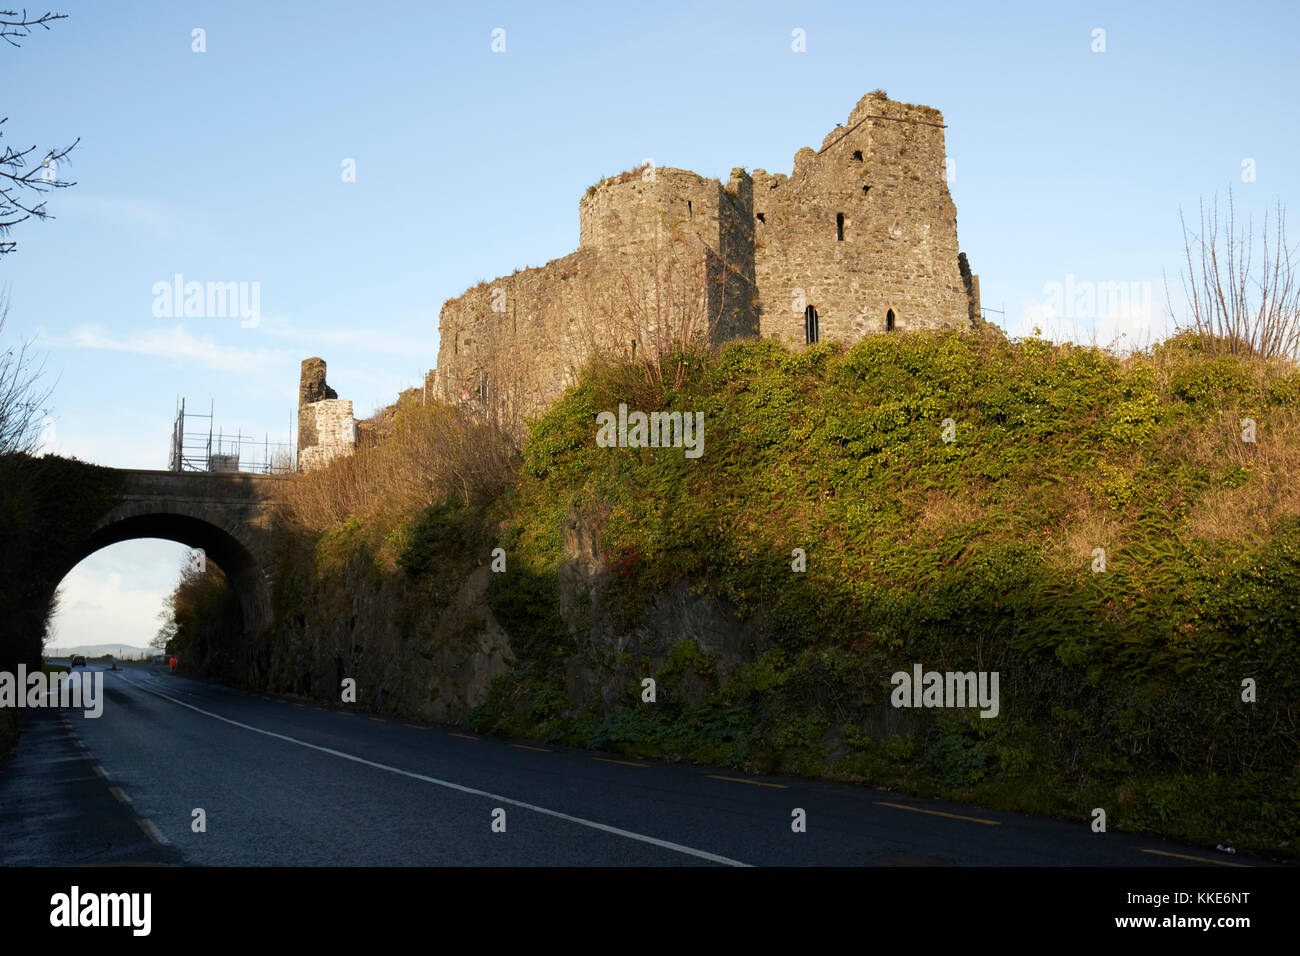 king johns castle carlingford county louth republic of ireland - Stock Image